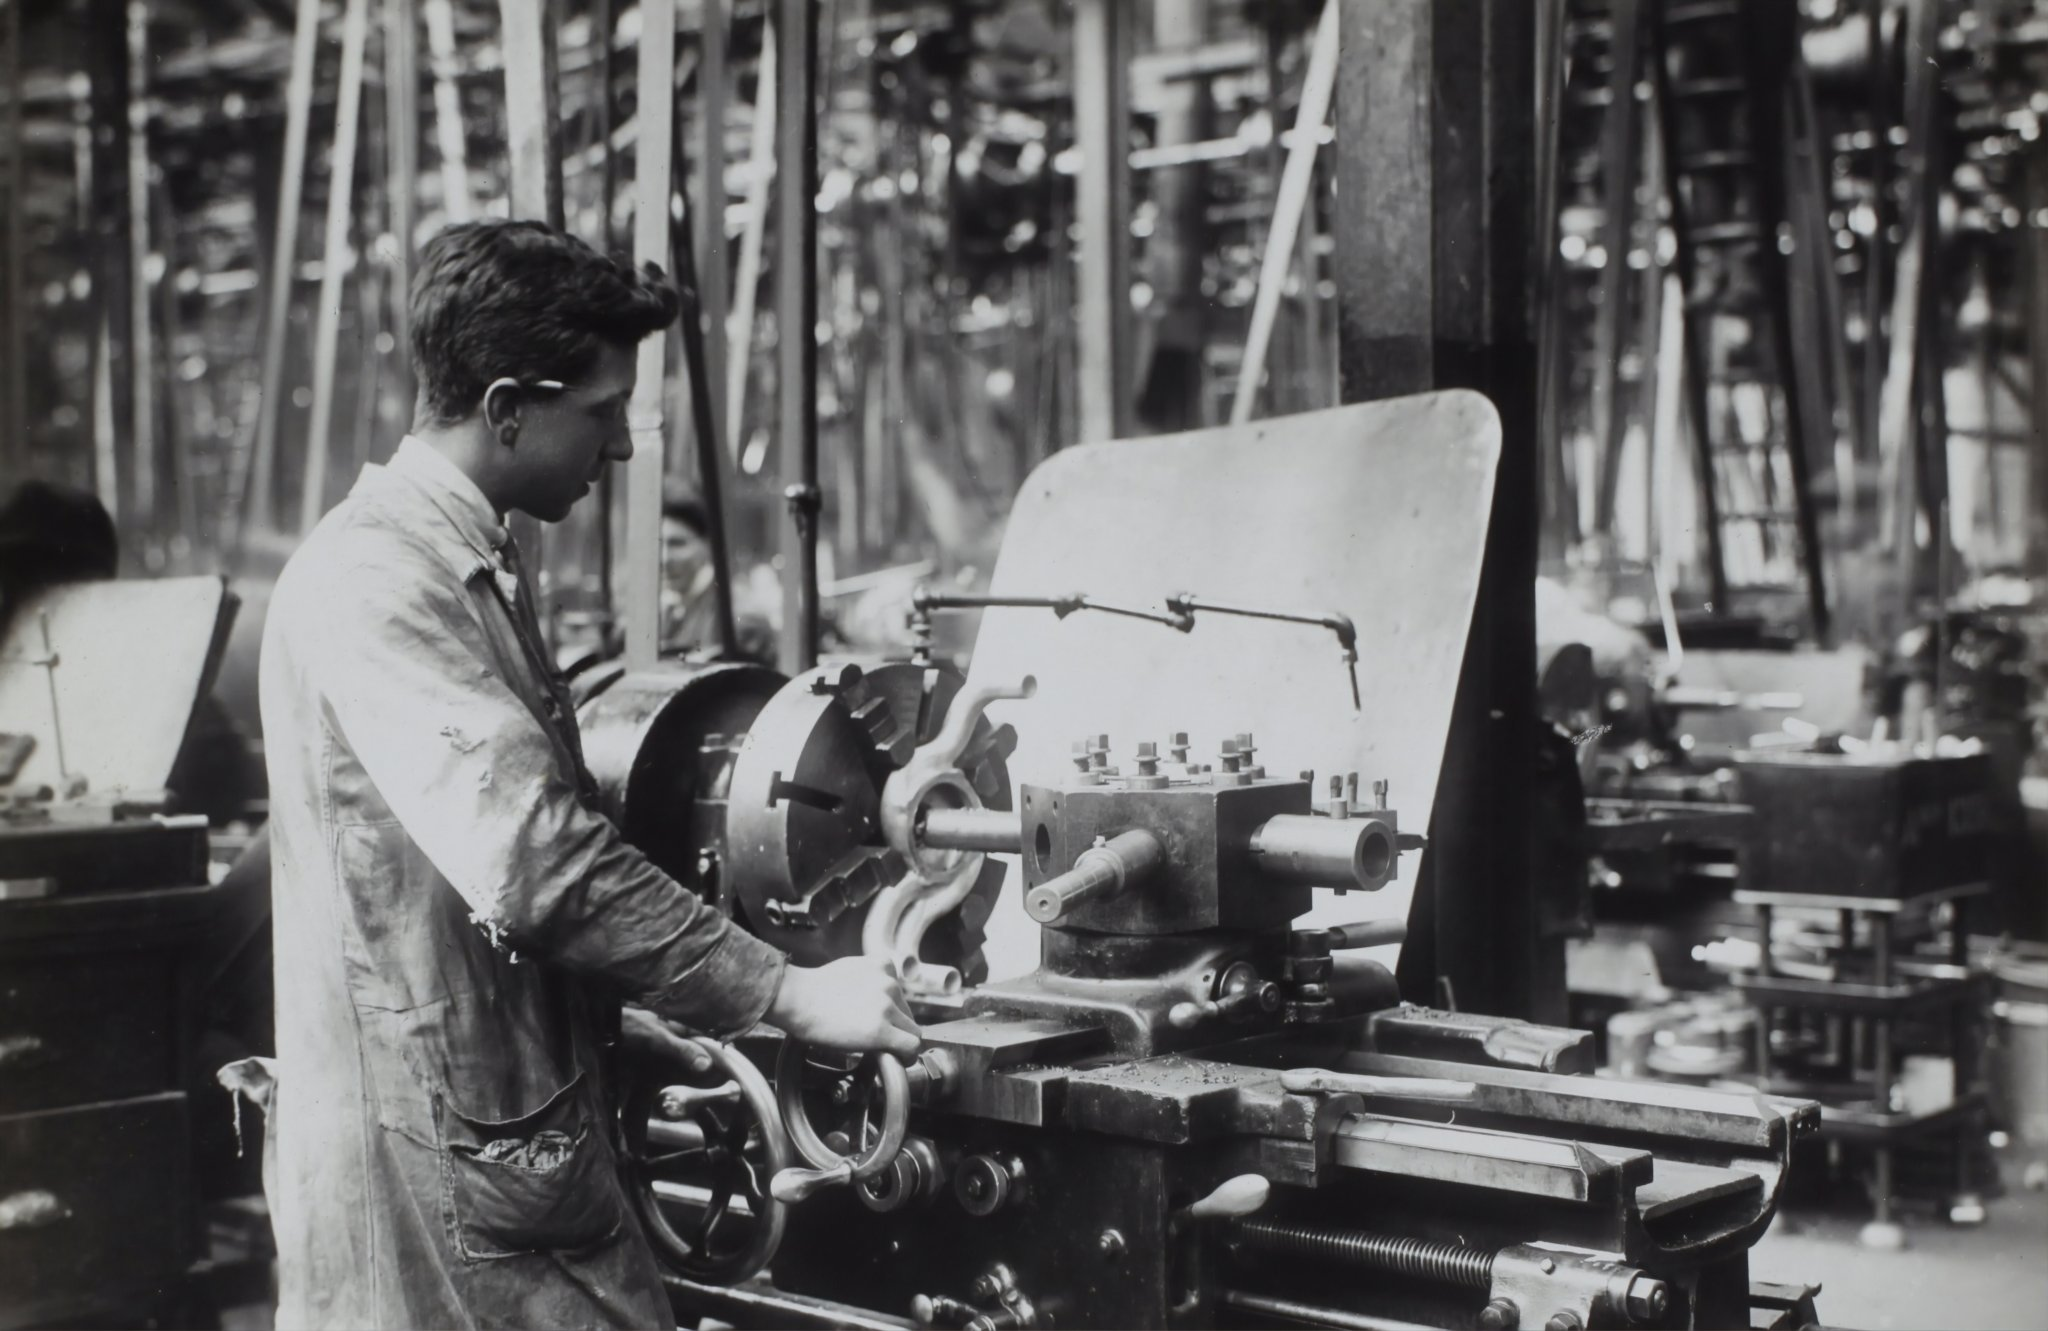 Man working in textile factory